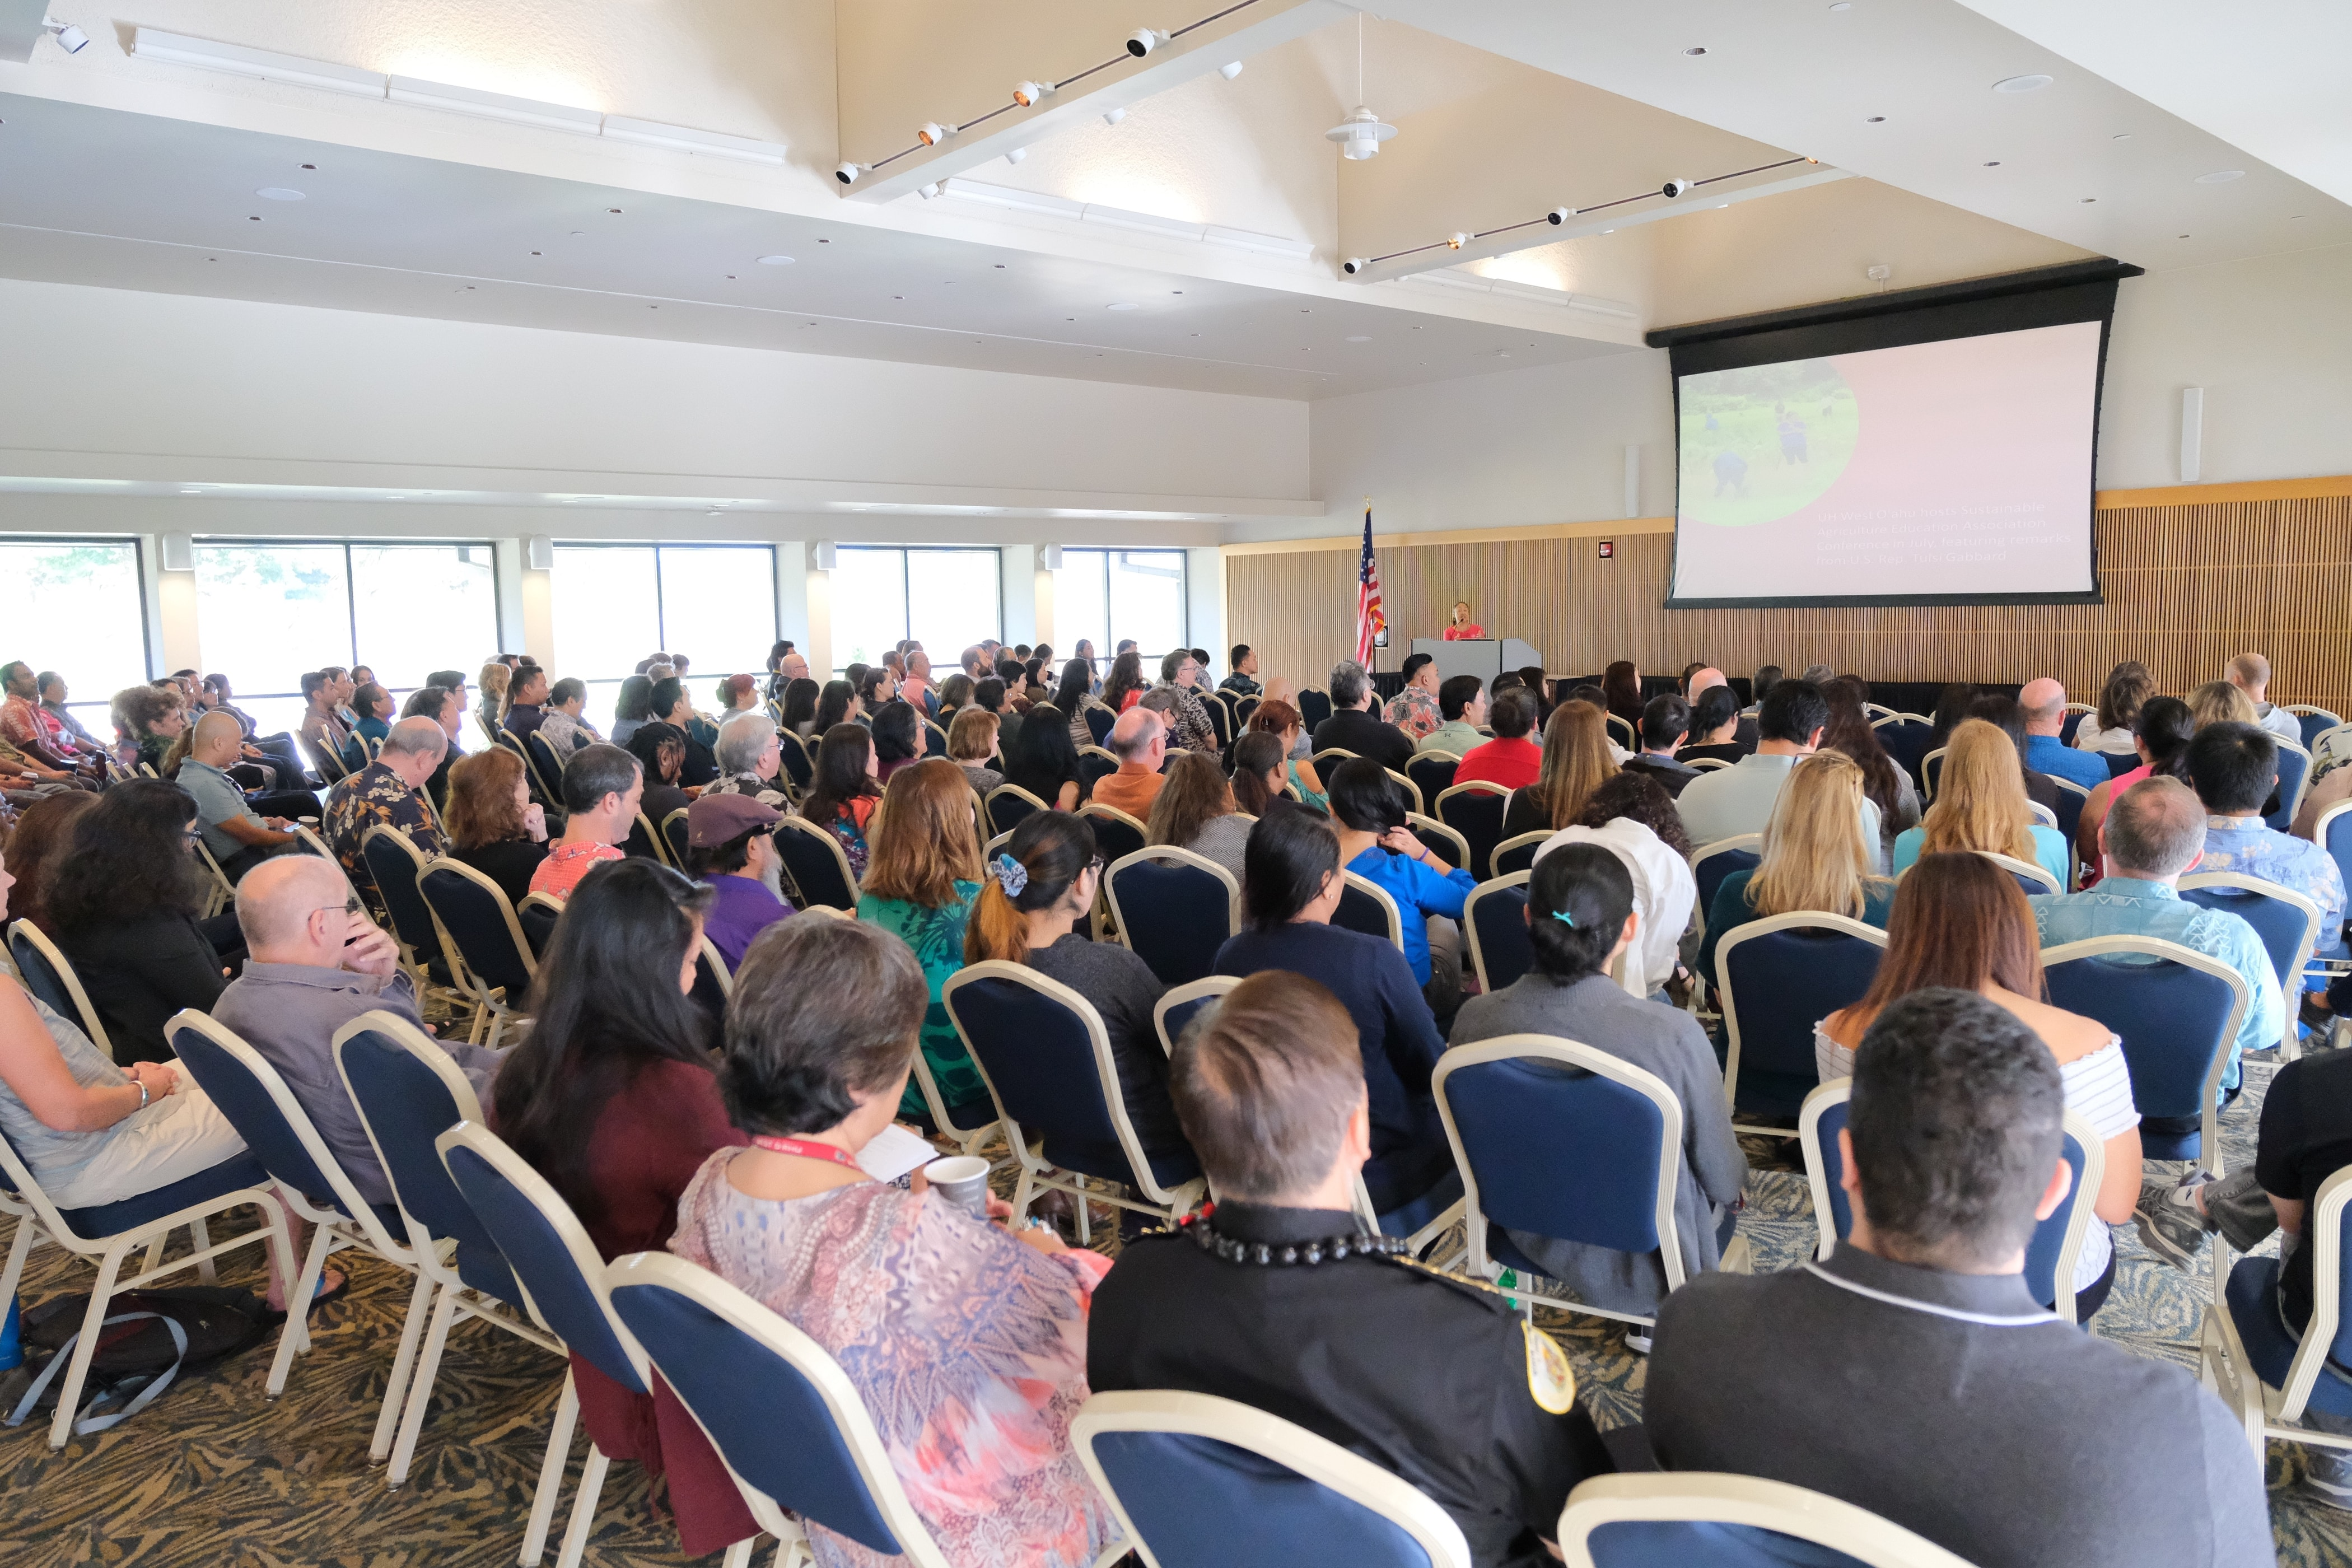 Photo of a large room filled with people sitting in rows of seats with large screen and speakers podium at front of room